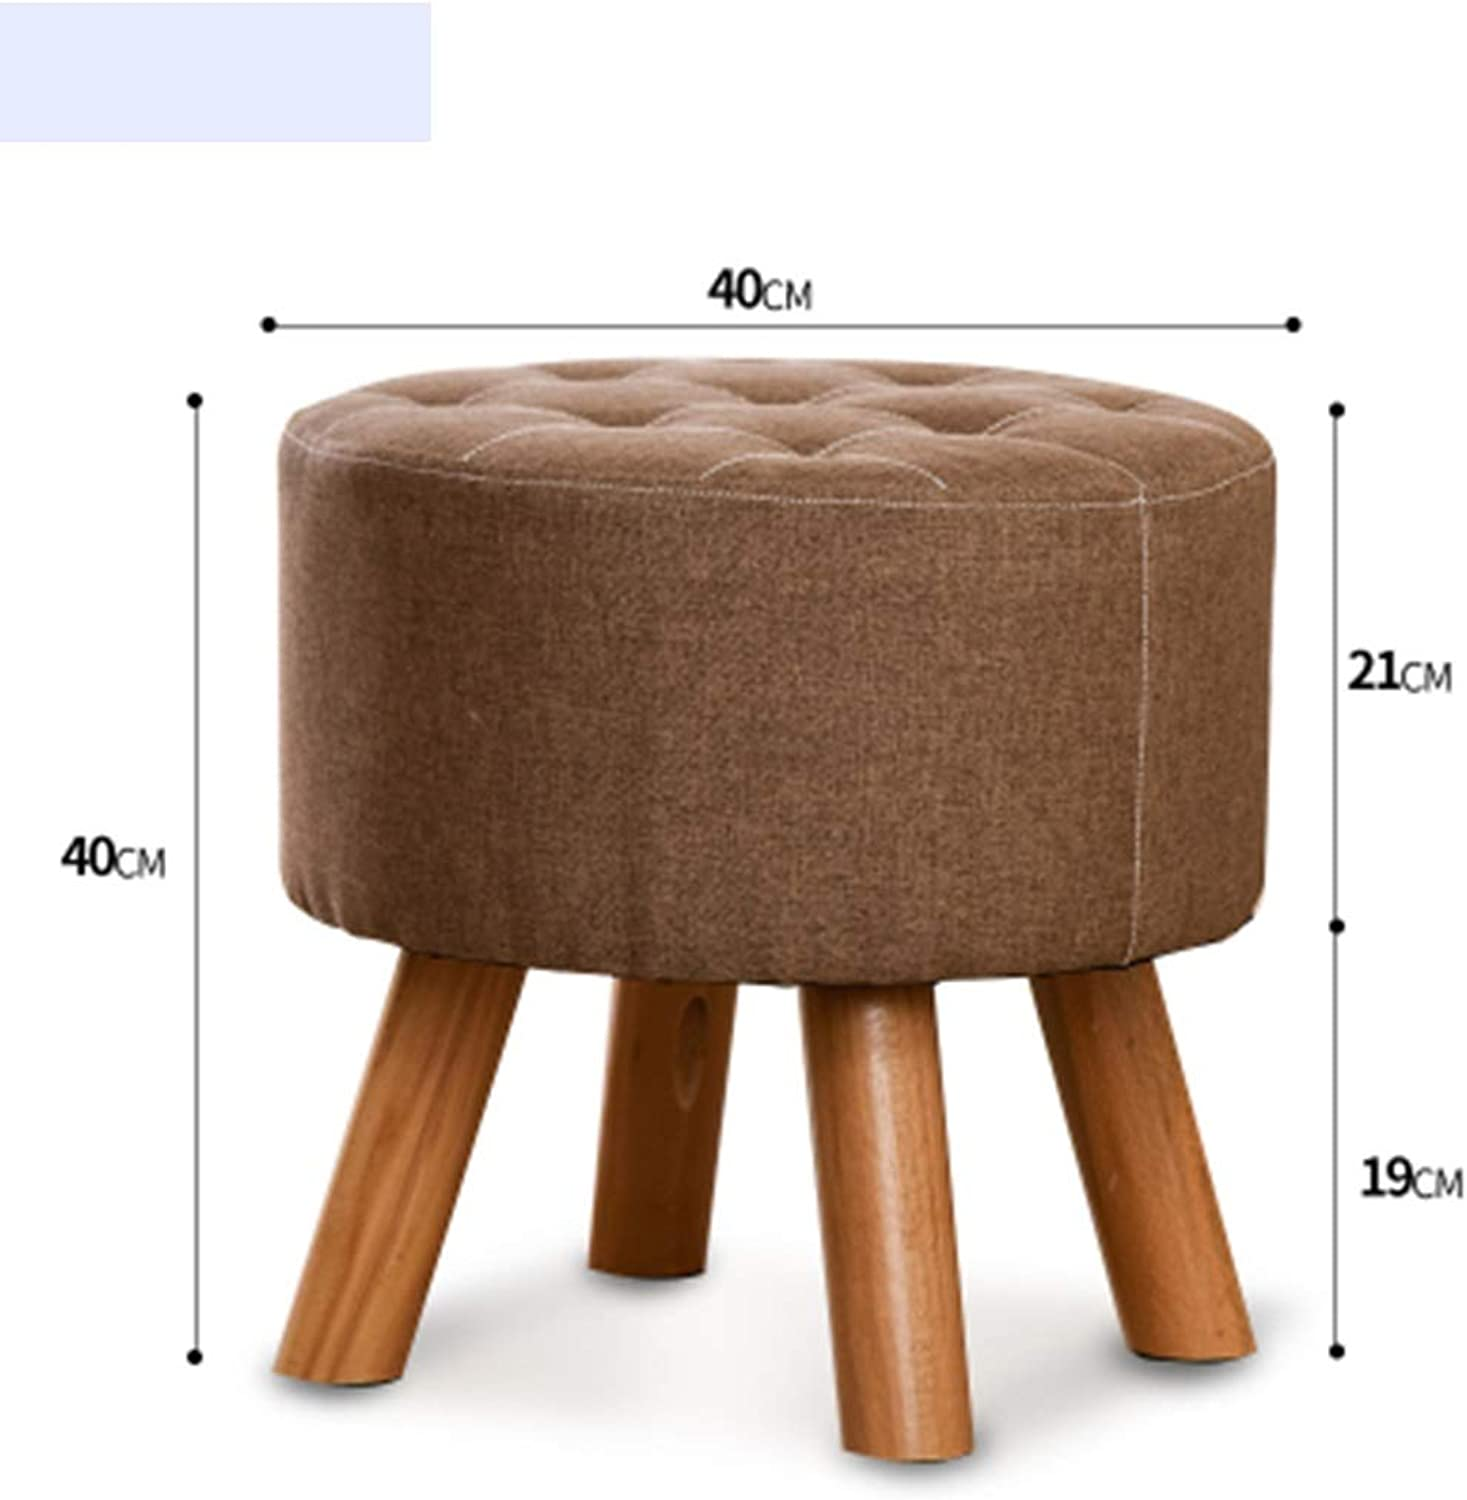 RHHWJJXB Solid Wood Stool Creative Fashion Square Stool Change shoes Stool Makeup Stool Small Wooden Bench Dining Table Stool Home Solid Wood Fabric Stool (color   D)